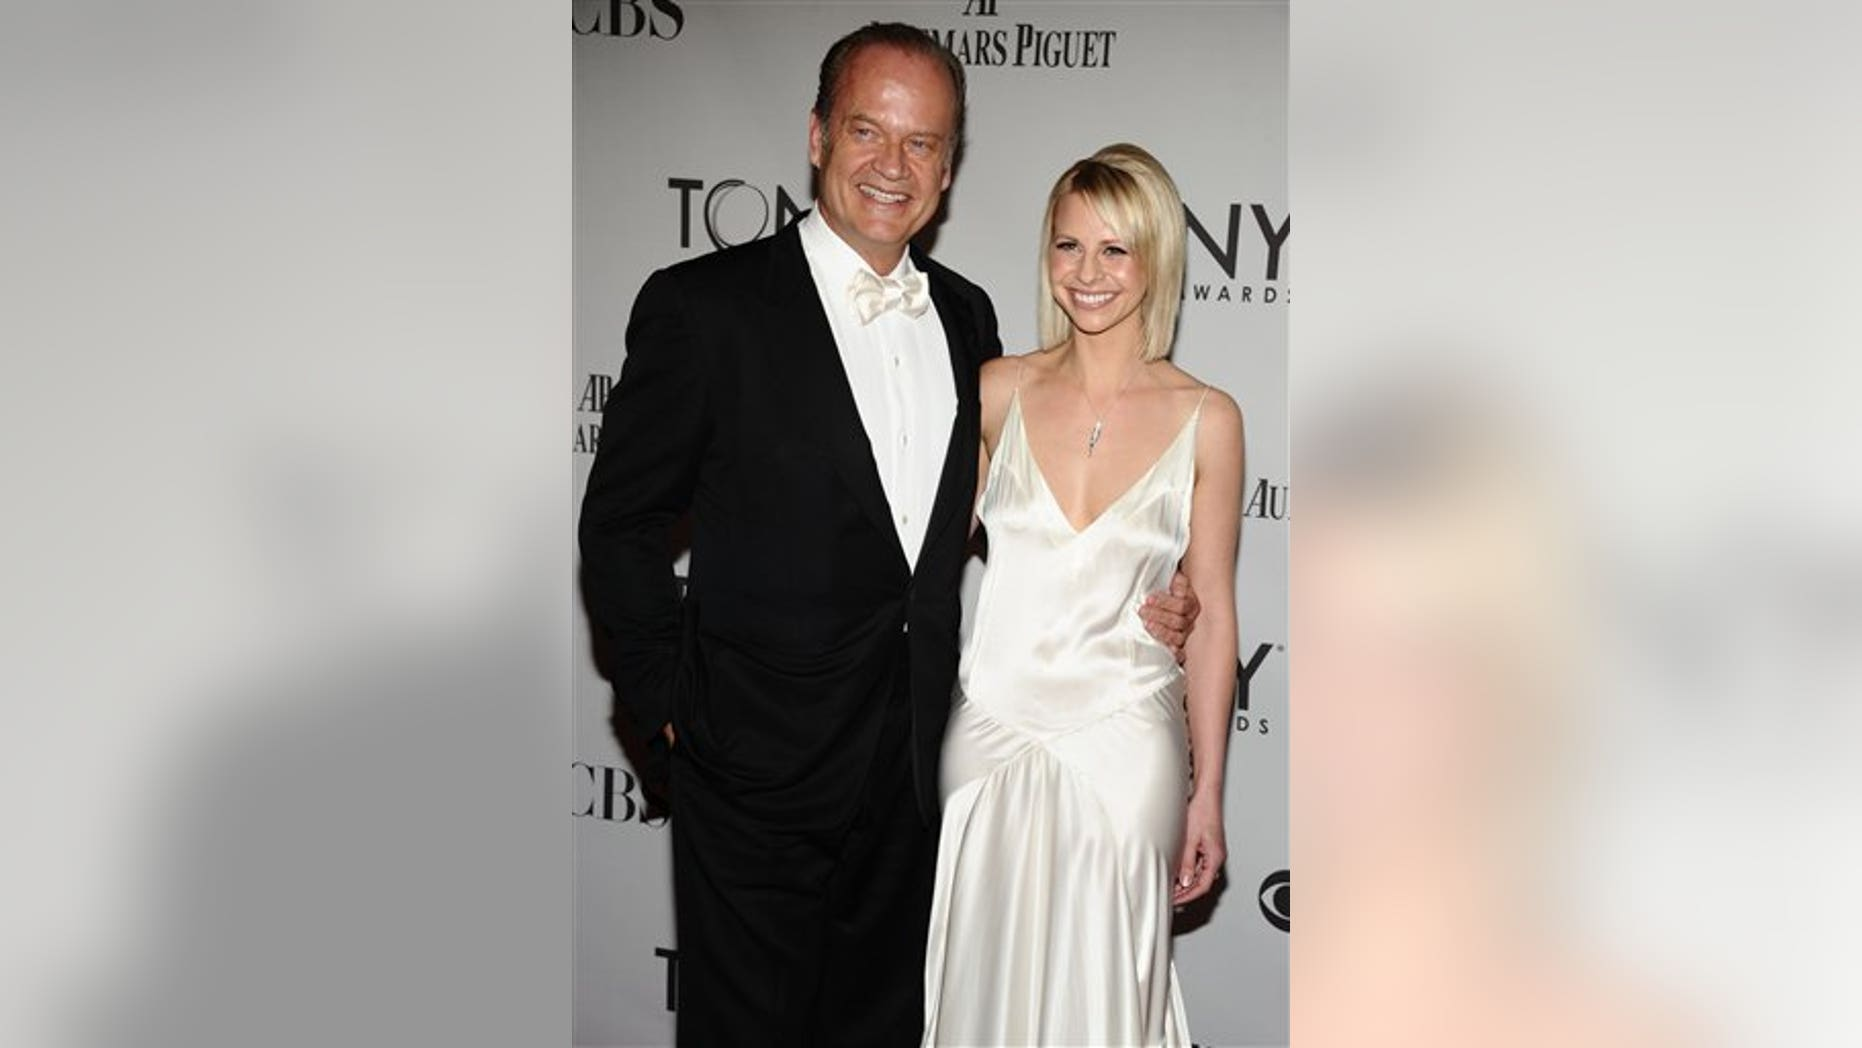 Kelsey Grammer, left, and Kayte Walsh arrive at the 65th Tony Awards, Sunday, June 12, 2011 in New York. (AP Photo/Charles Sykes)